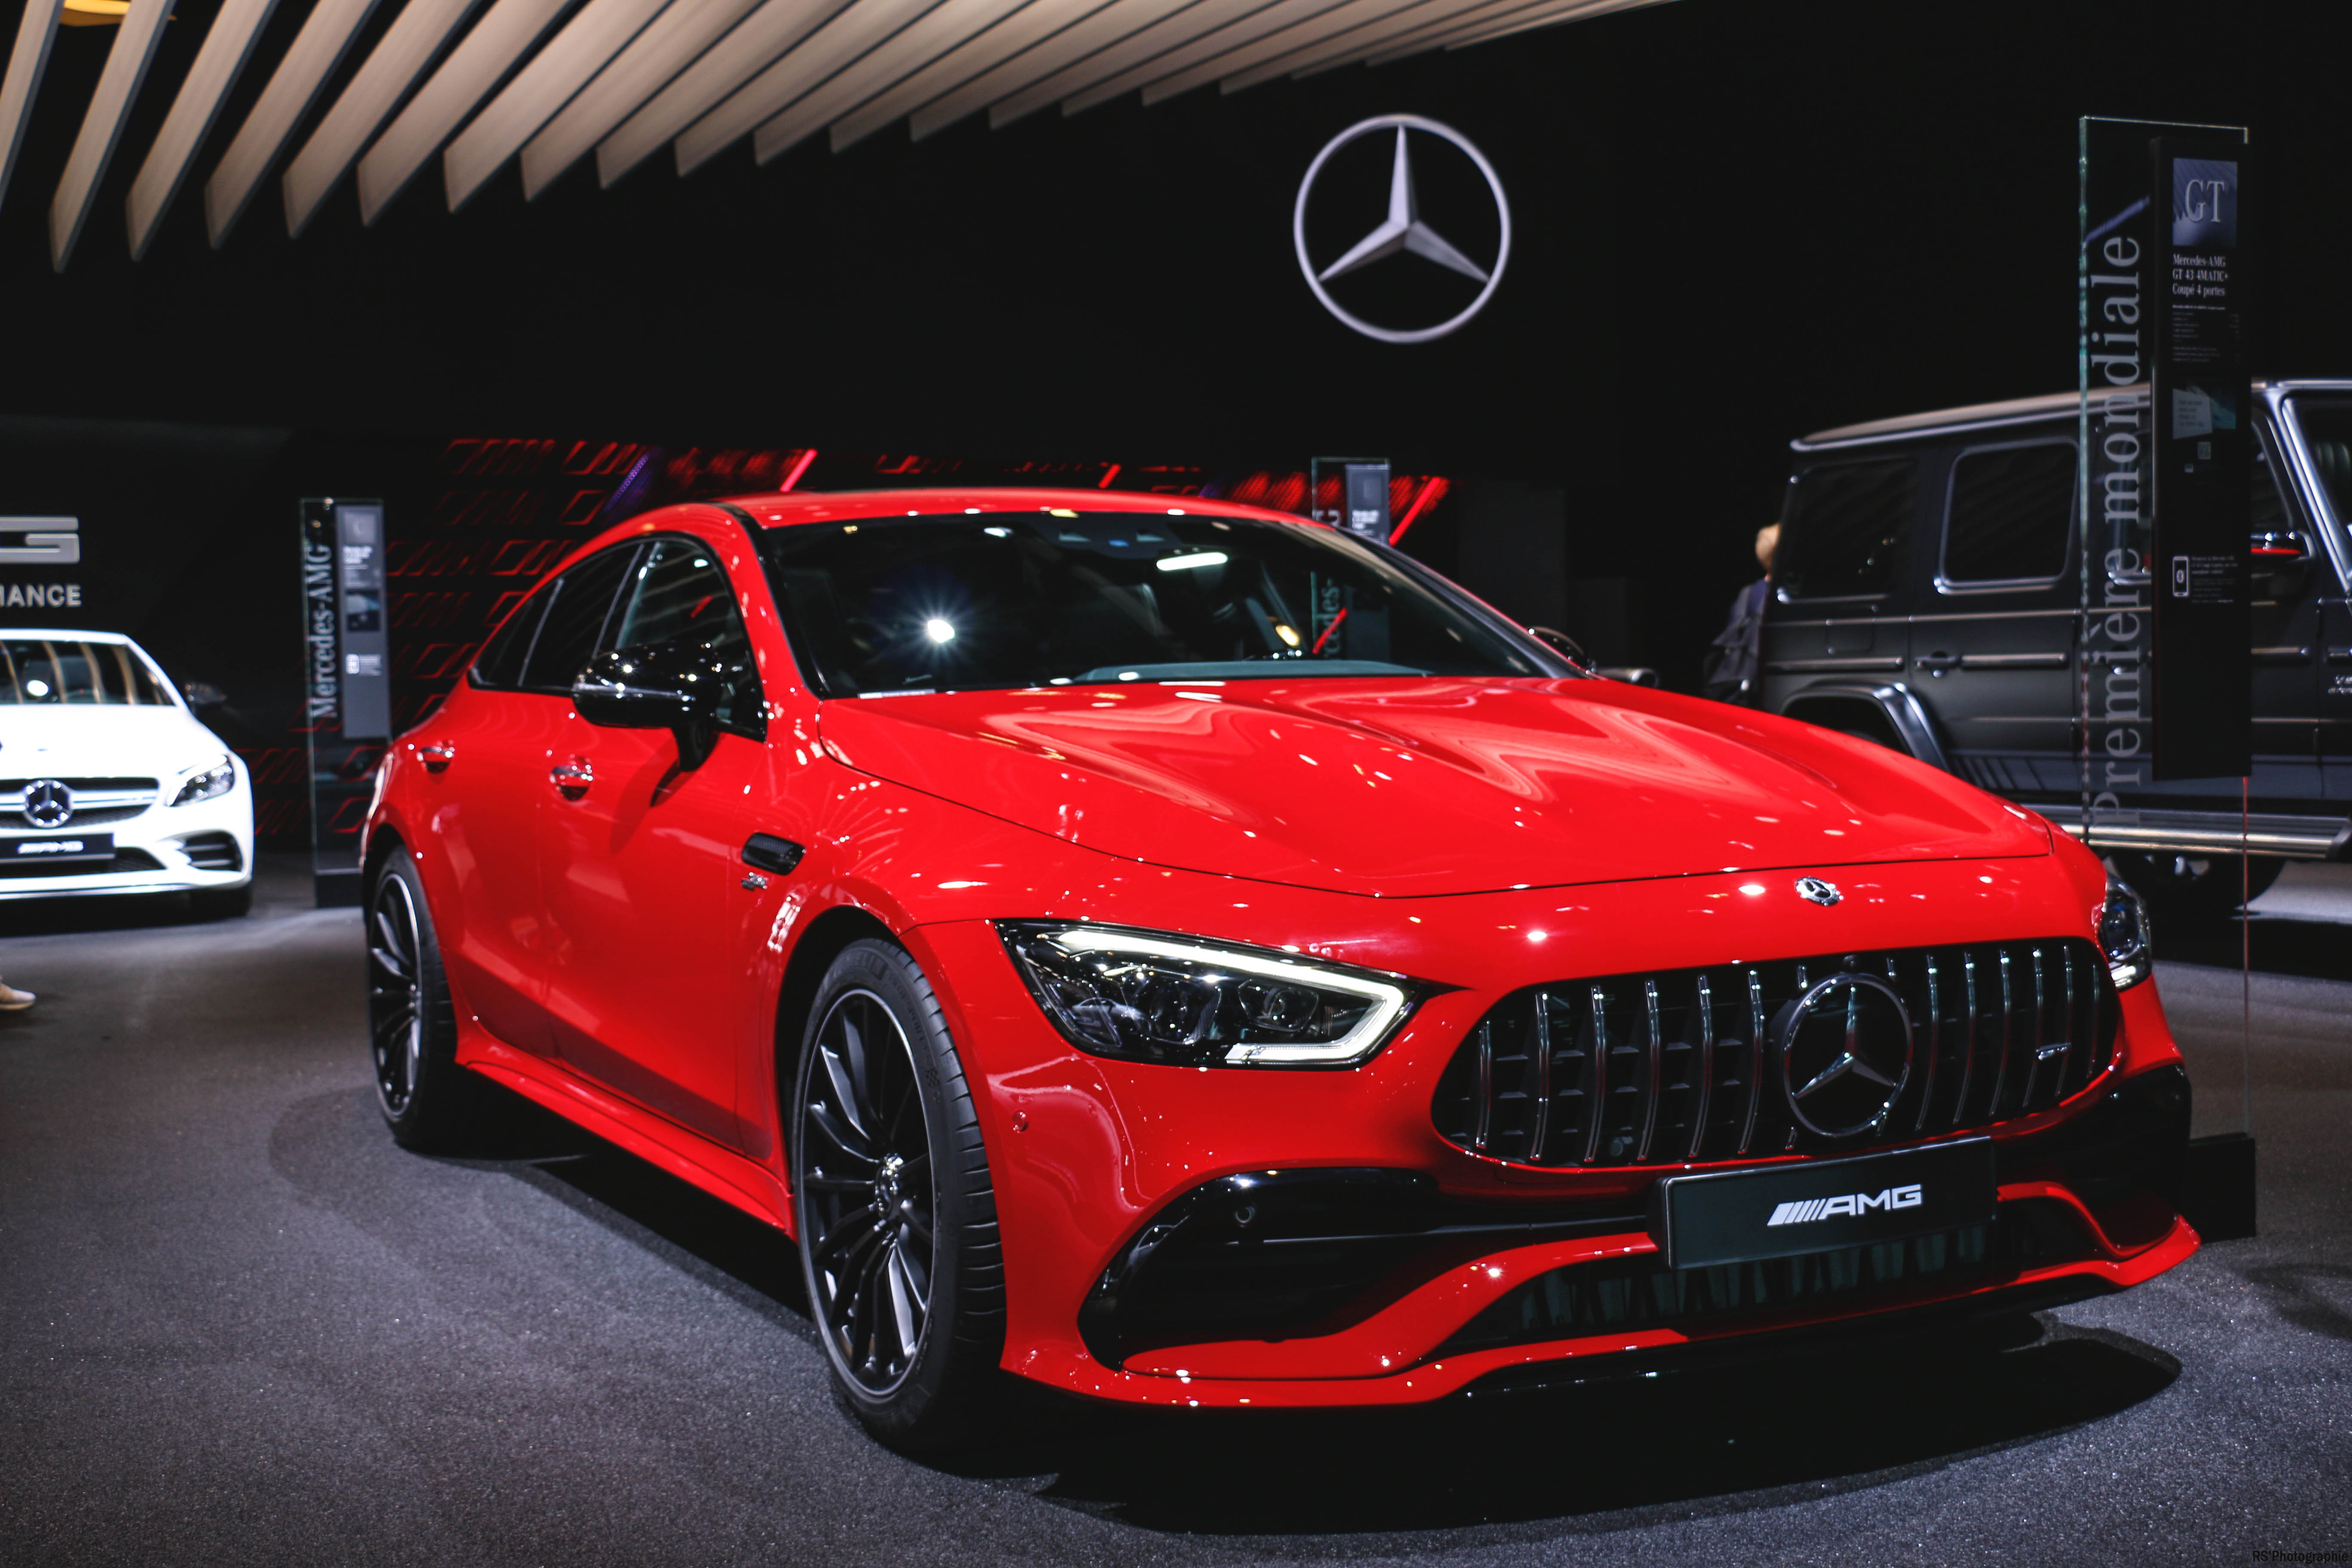 Mercedes-AMG GT 4Door Coupe - Paris Motor Show - 2018 - Mondial Auto - photo by Arnaud Demasier RS Photographie